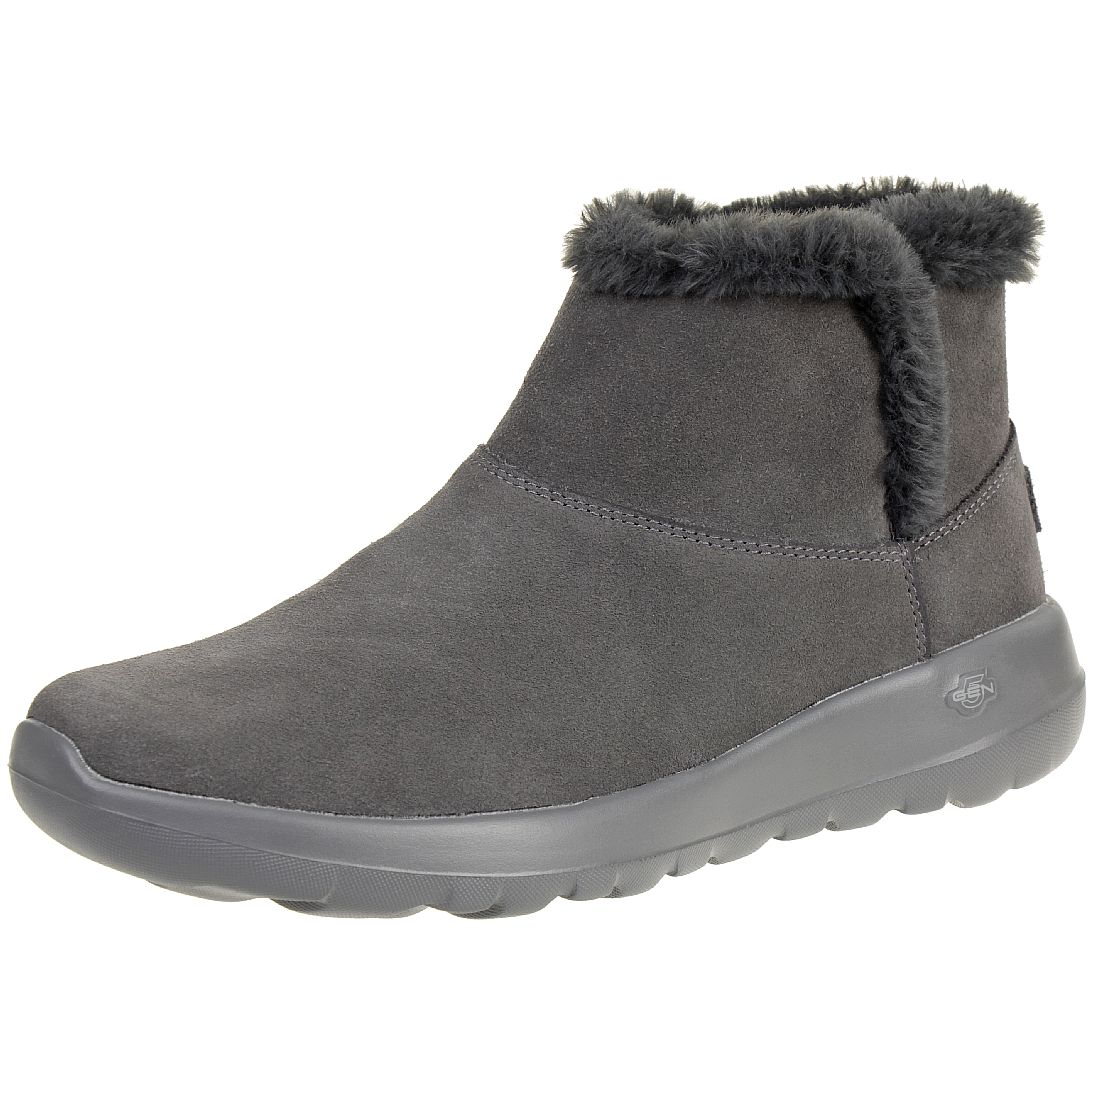 Skechers On the Go JOY BUNDLE UP Stiefel Damen Winterschuhe